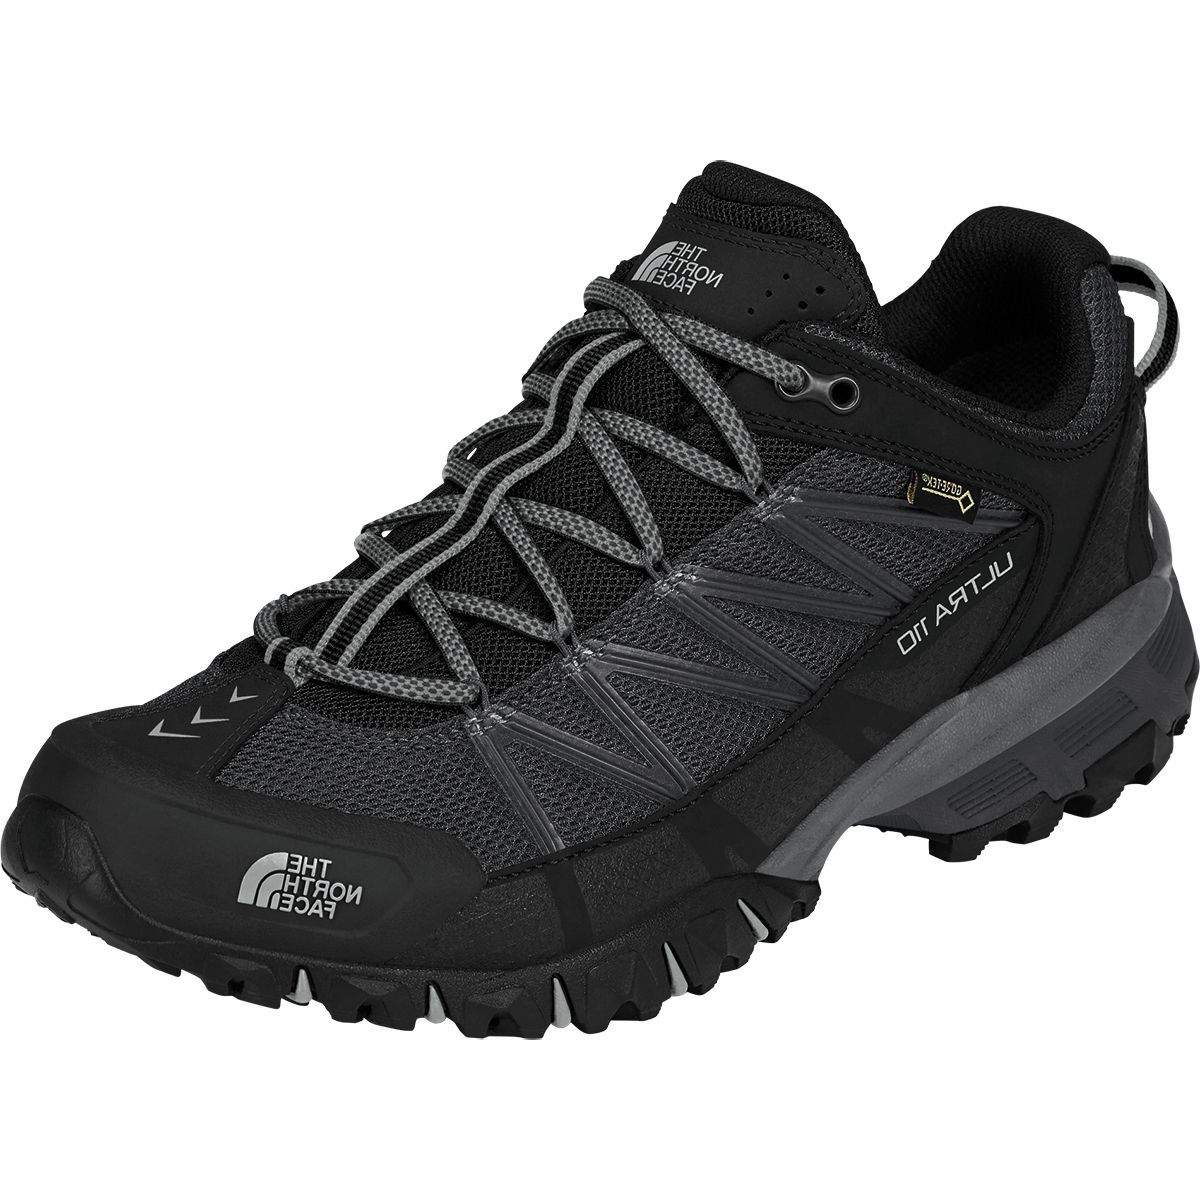 The North Face Ultra 110 GTX Shoe - Men's